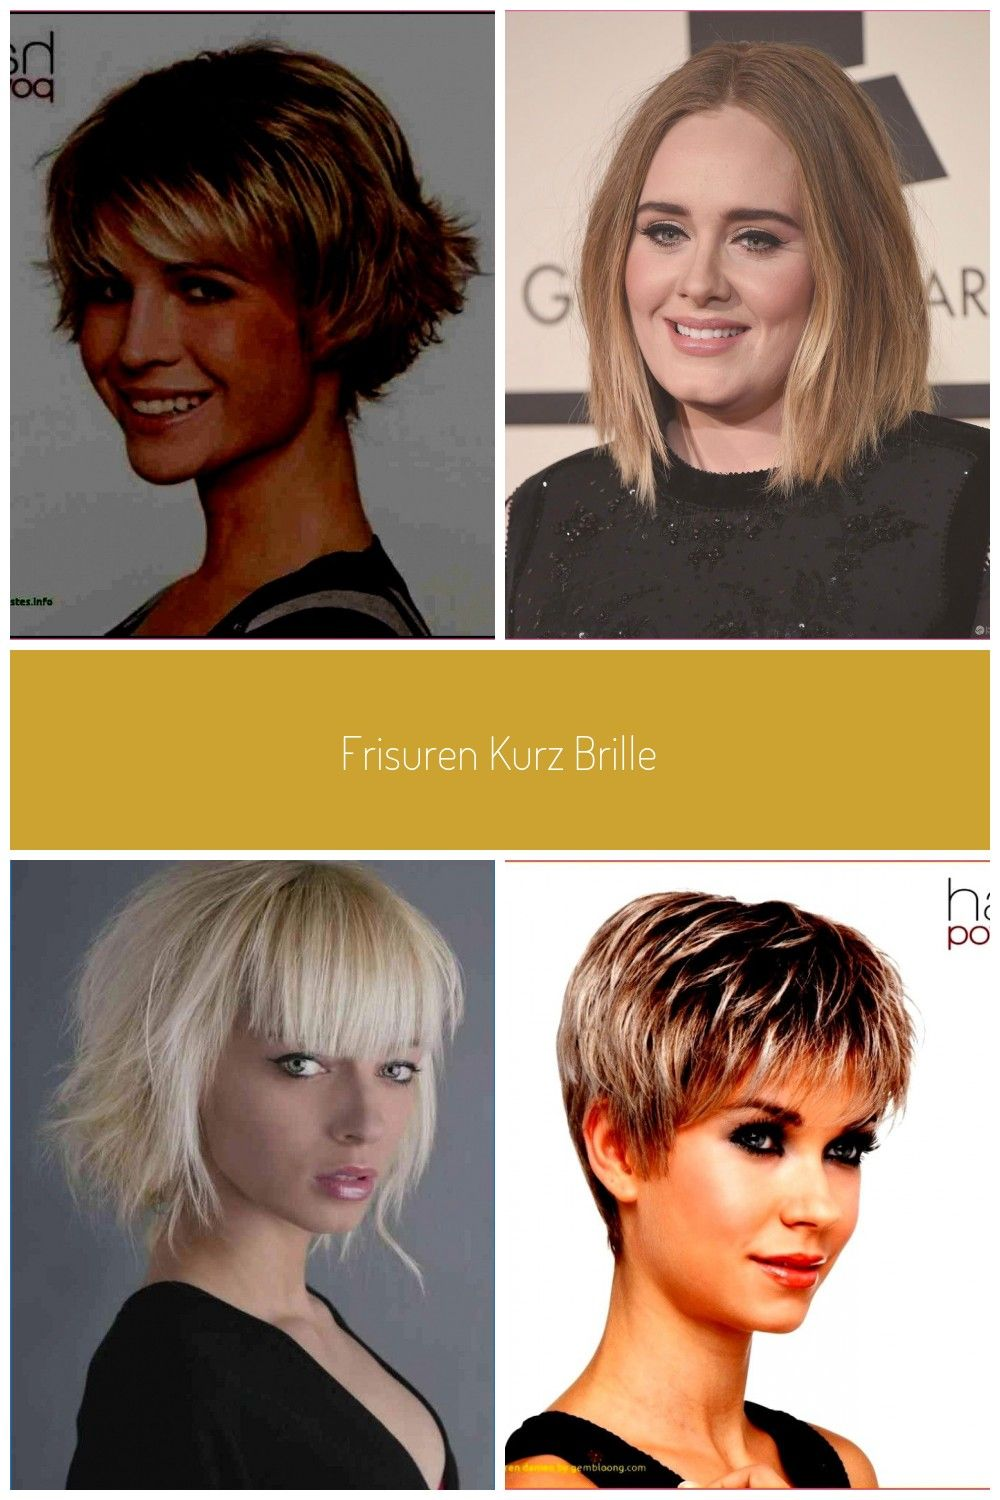 Frisur Feines Haar Rundes Gesicht Brille Frisuren Fur Feines Haar Ab 50 Top Frisuren 2019 Frisu Hairstyles For Round Faces Hair Styles Hairstyles With Glasses